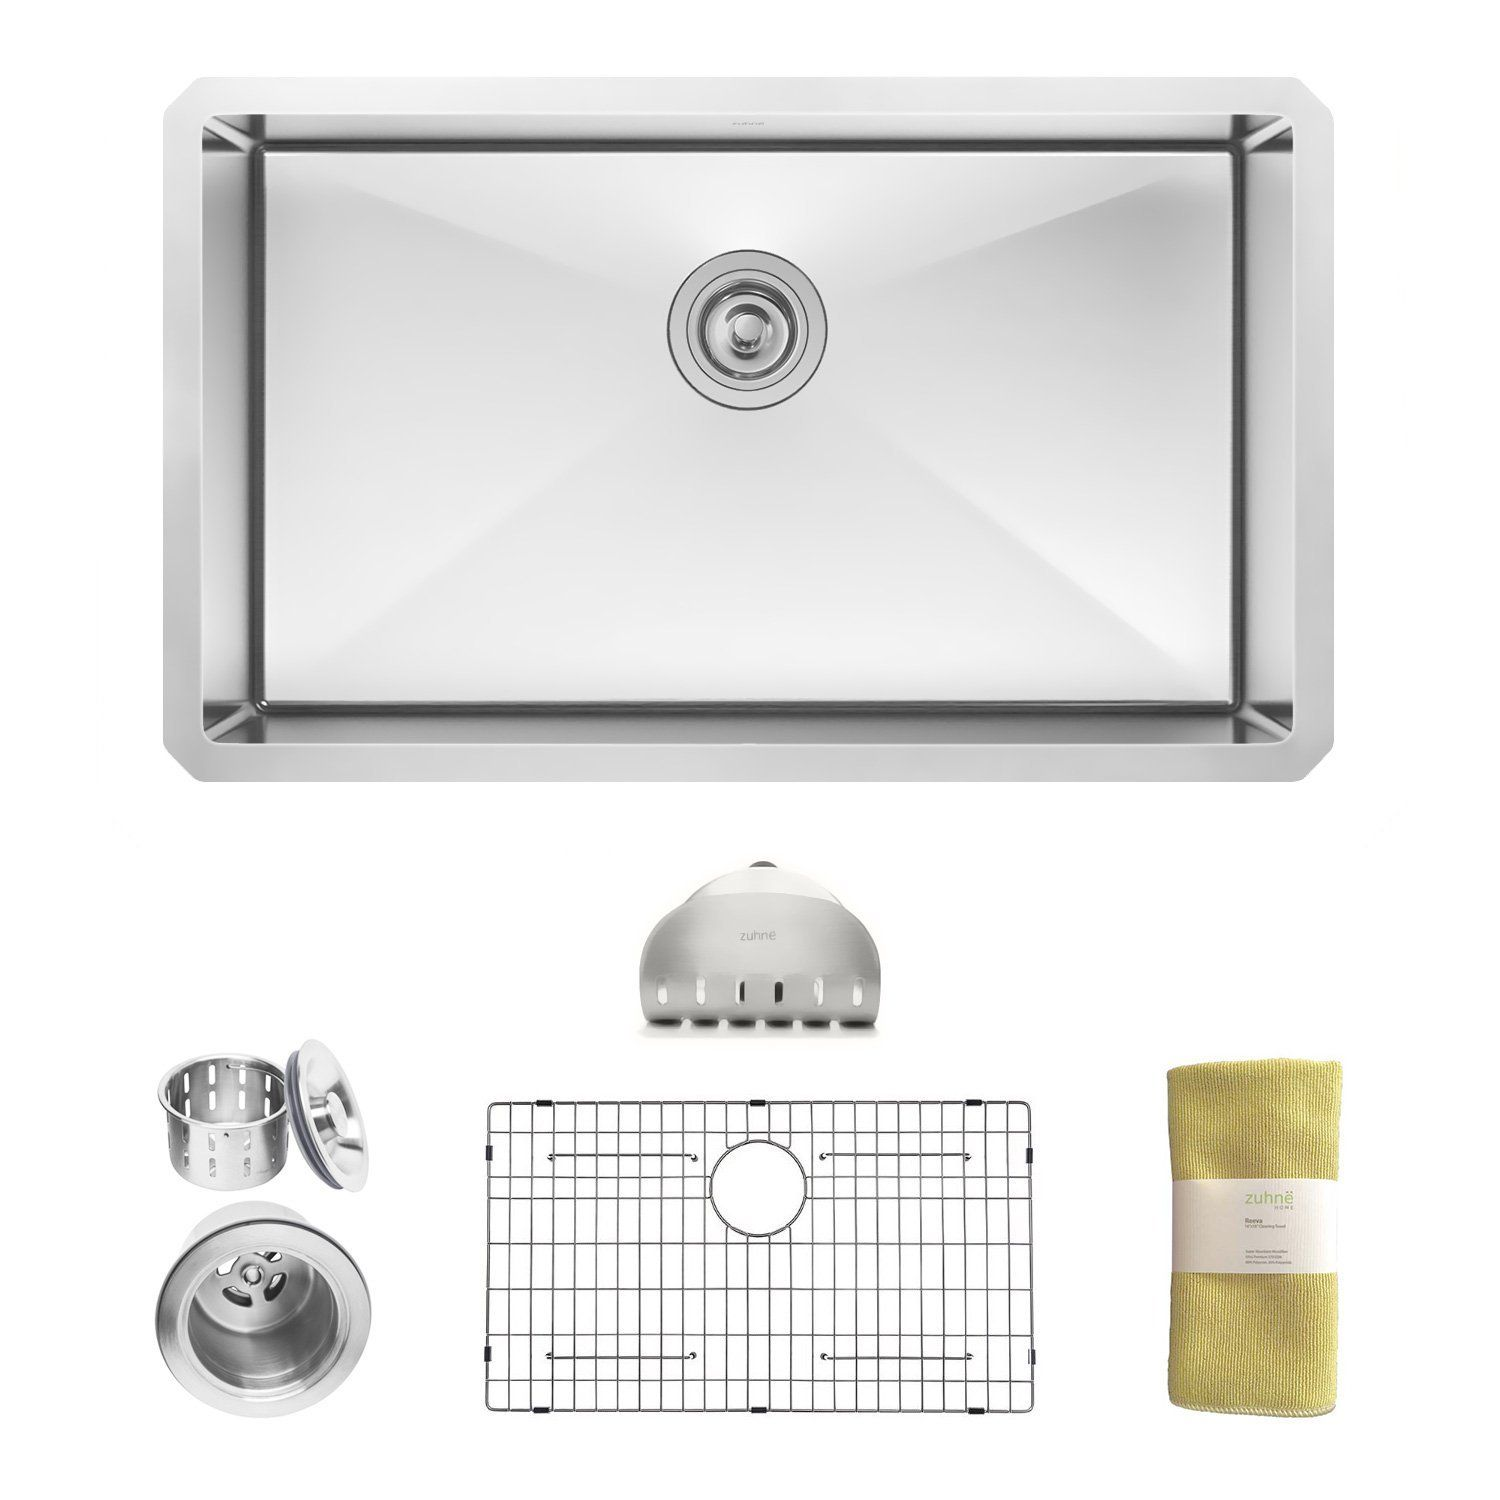 Zuhne Modena 30 Inch Undermount Single Bowl 16 Gauge Stainless Steel Kitchen Sink Amazon C Stainless Steel Kitchen Sink Stainless Steel Farmhouse Sink Sink